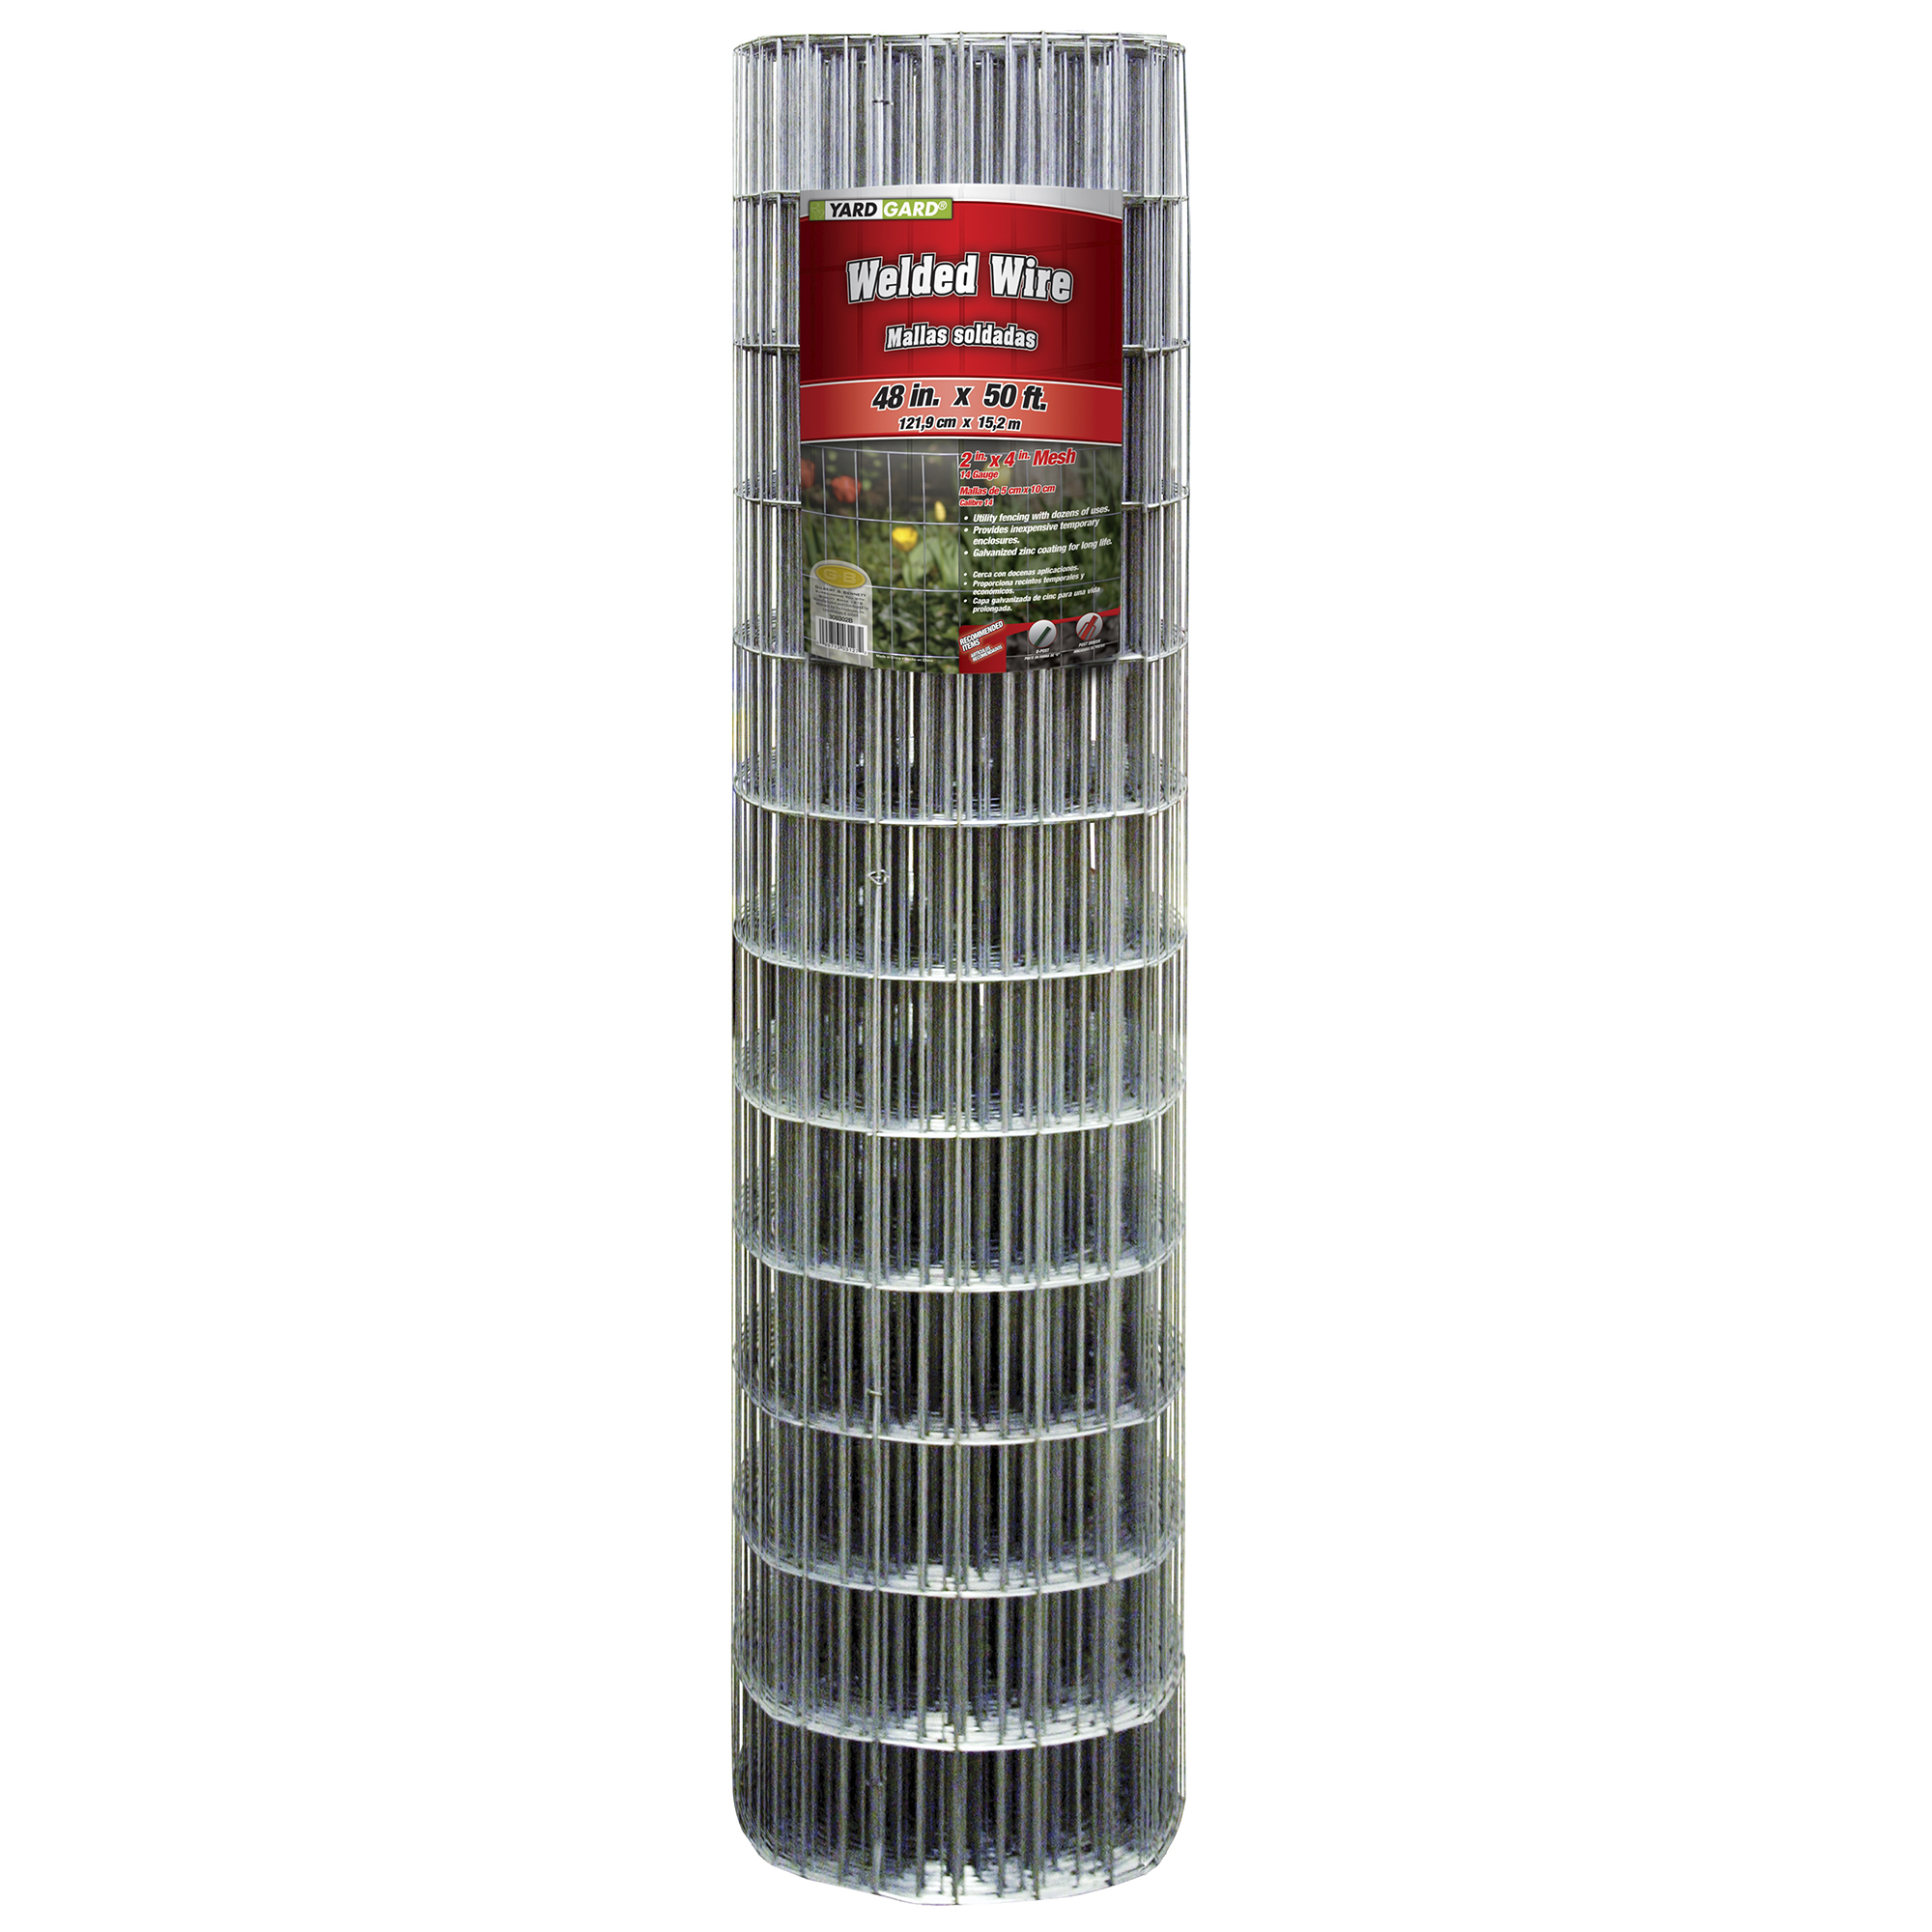 YARDGARD 2 Inch By 4 Inch Mesh, 48 Inch by 50 Foot Galvanized Welded Wire Fence